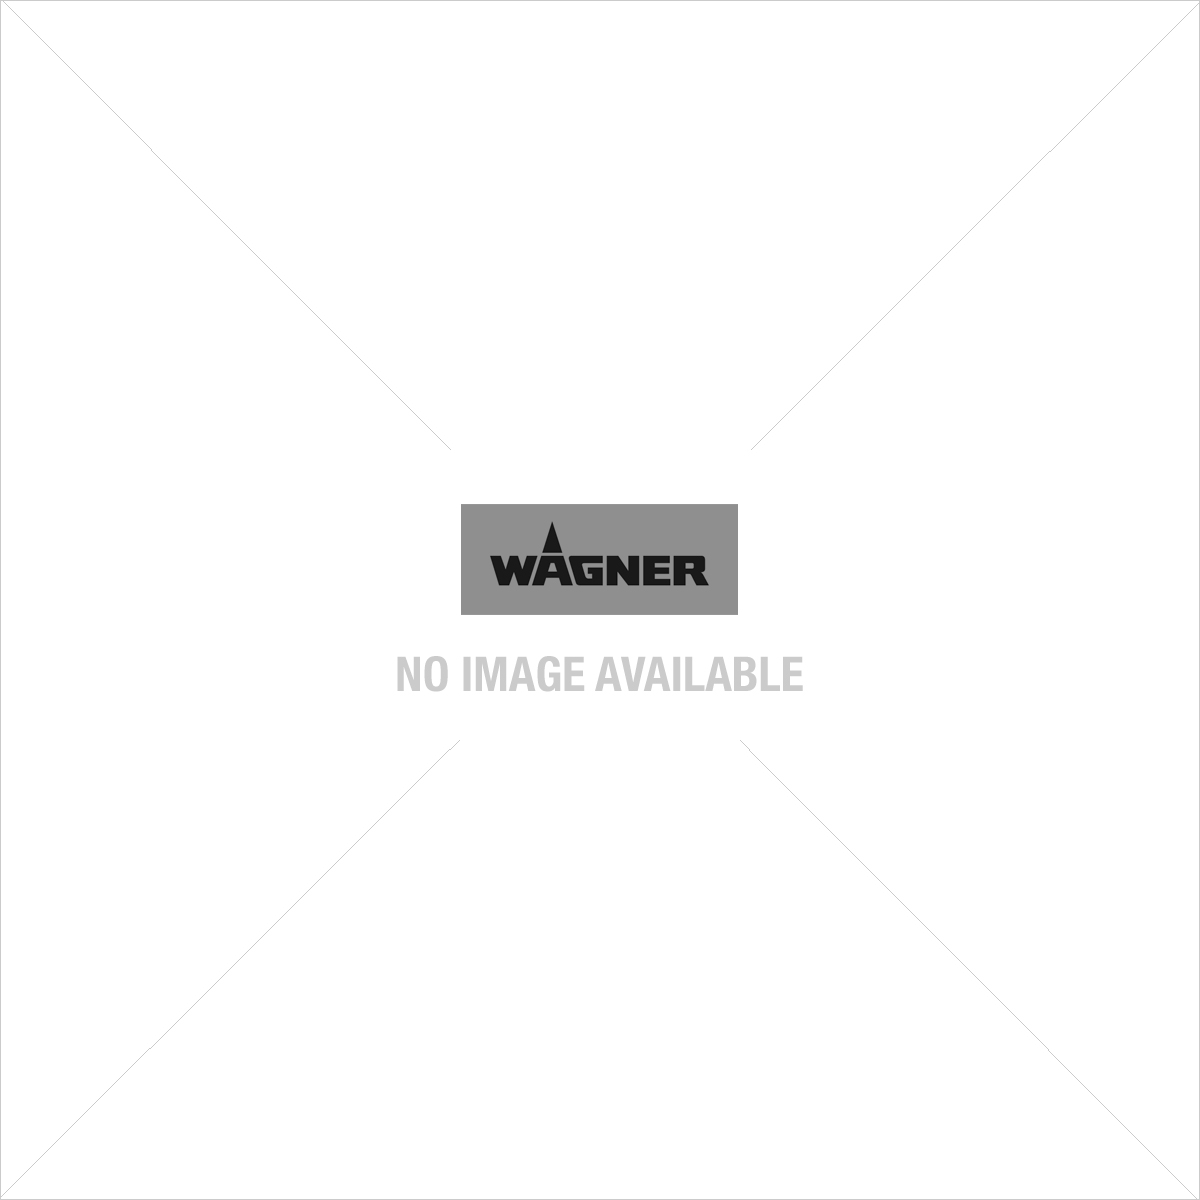 wagner project pro 117 airless paint sprayer. Black Bedroom Furniture Sets. Home Design Ideas